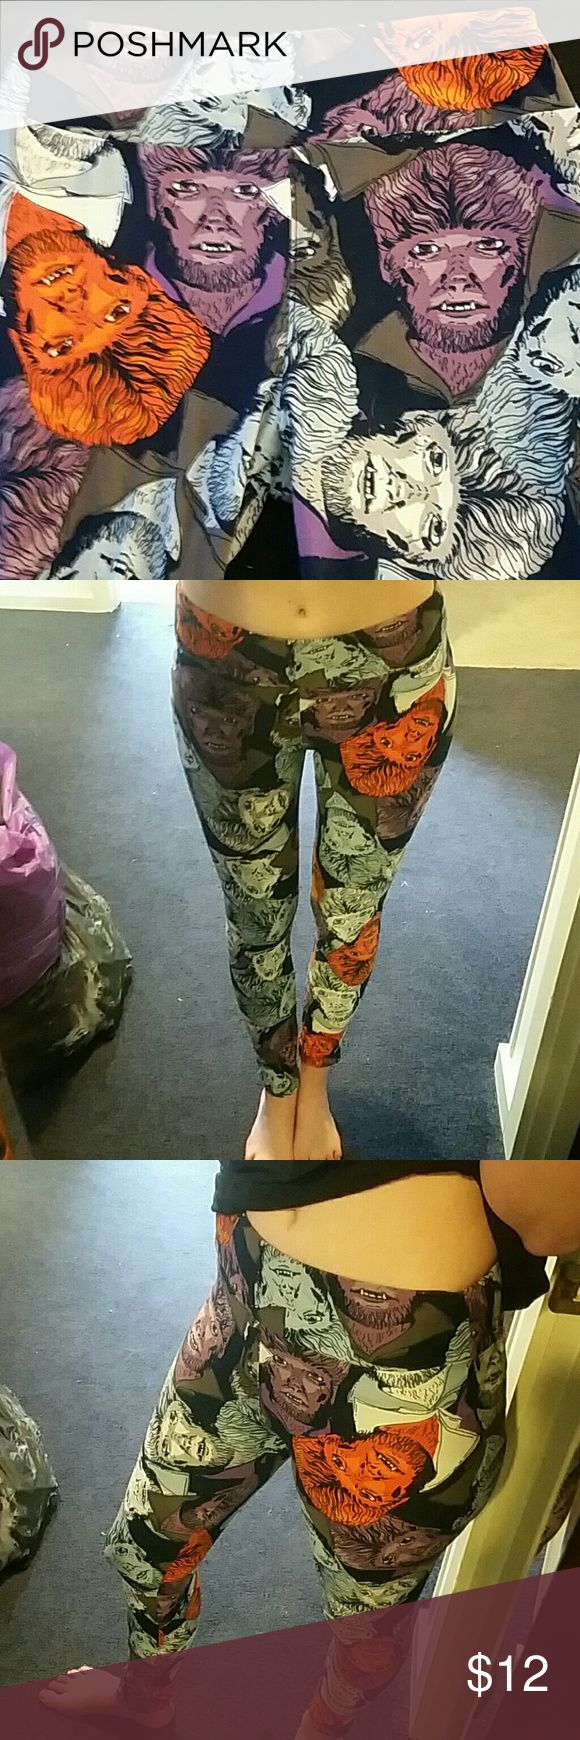 """Lulu Roe Leggings in """"Wolfman"""" Lulu Roe leggings with a """"WolfMan"""" print to it. Spooky babes will lovd these. One size but could fit xs,s,or medium. I am 5'7, 120lb and they are stretchy, soft, spooky!!! LuLaRoe Pants Leggings"""